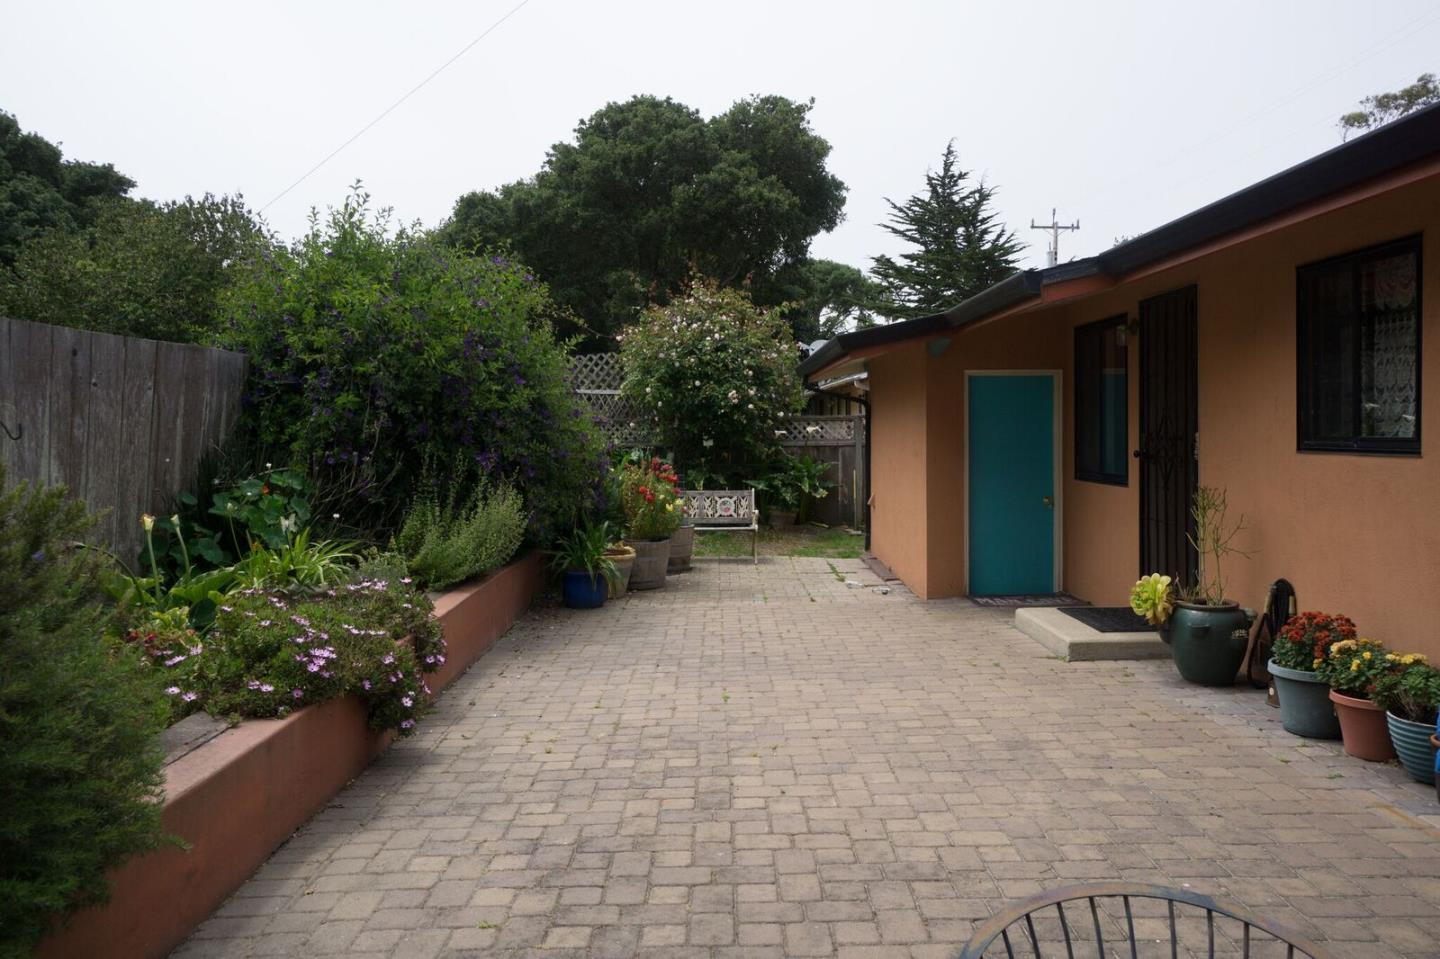 Additional photo for property listing at 729 Rosemont Avenue  Pacific Grove, California 93950 United States